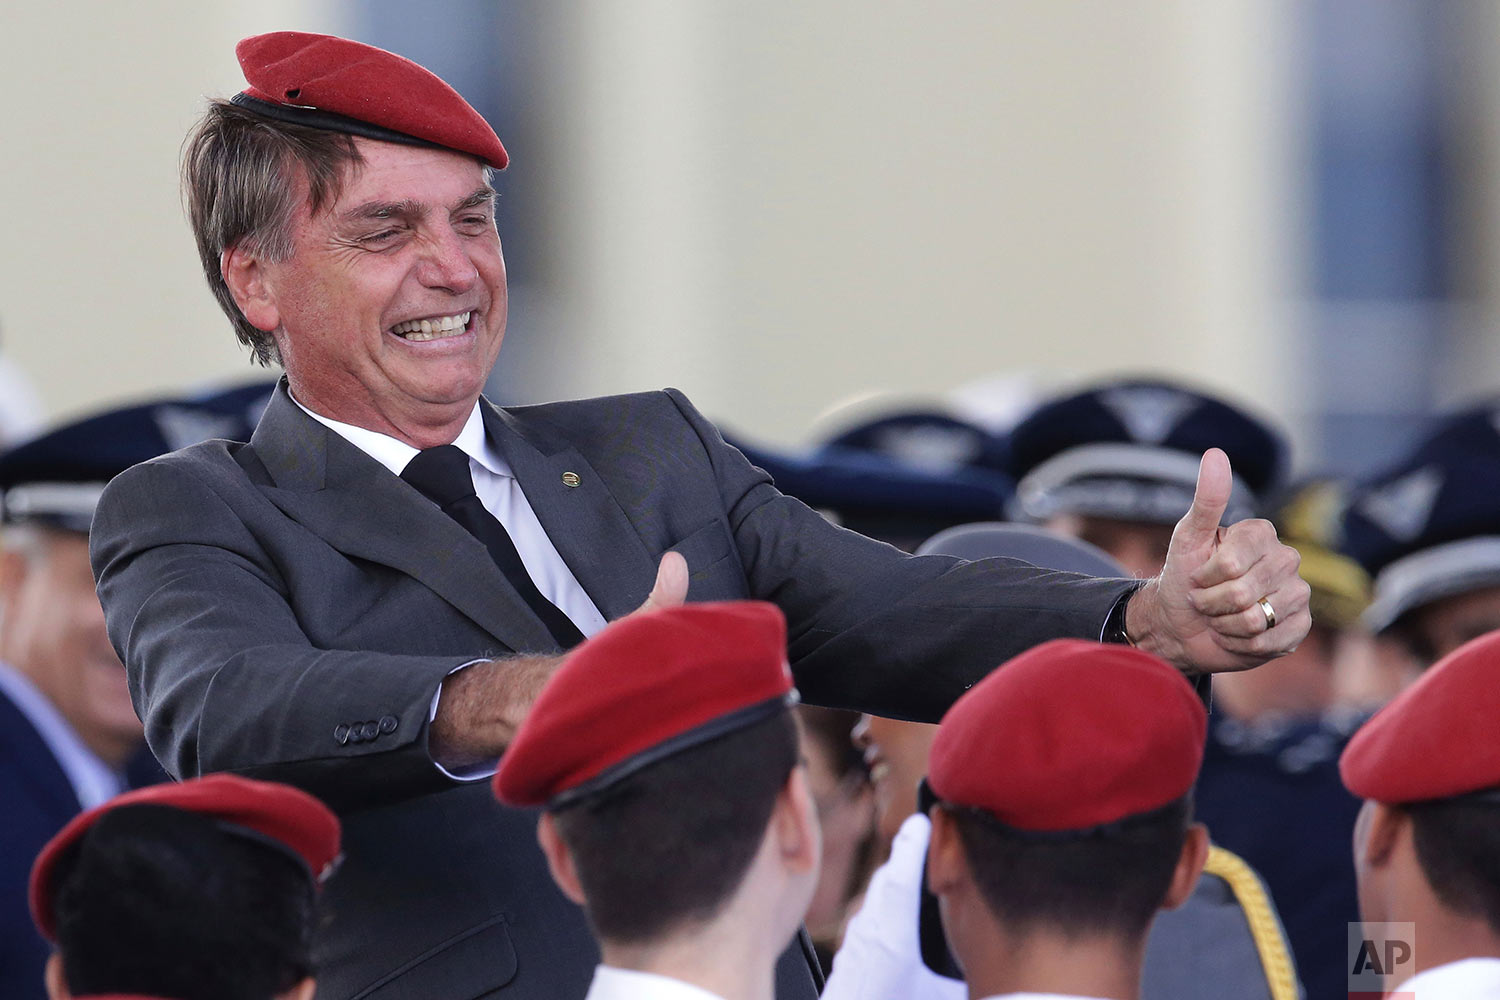 Presidential hopeful, conservative lawmaker Jair Bolsonaro flashes two thumbs up as he poses for a photo with cadets during a ceremony marking Army Day, in Brasilia, Brazil, Thursday, April 19, 2018. (AP Photo/Eraldo Peres)